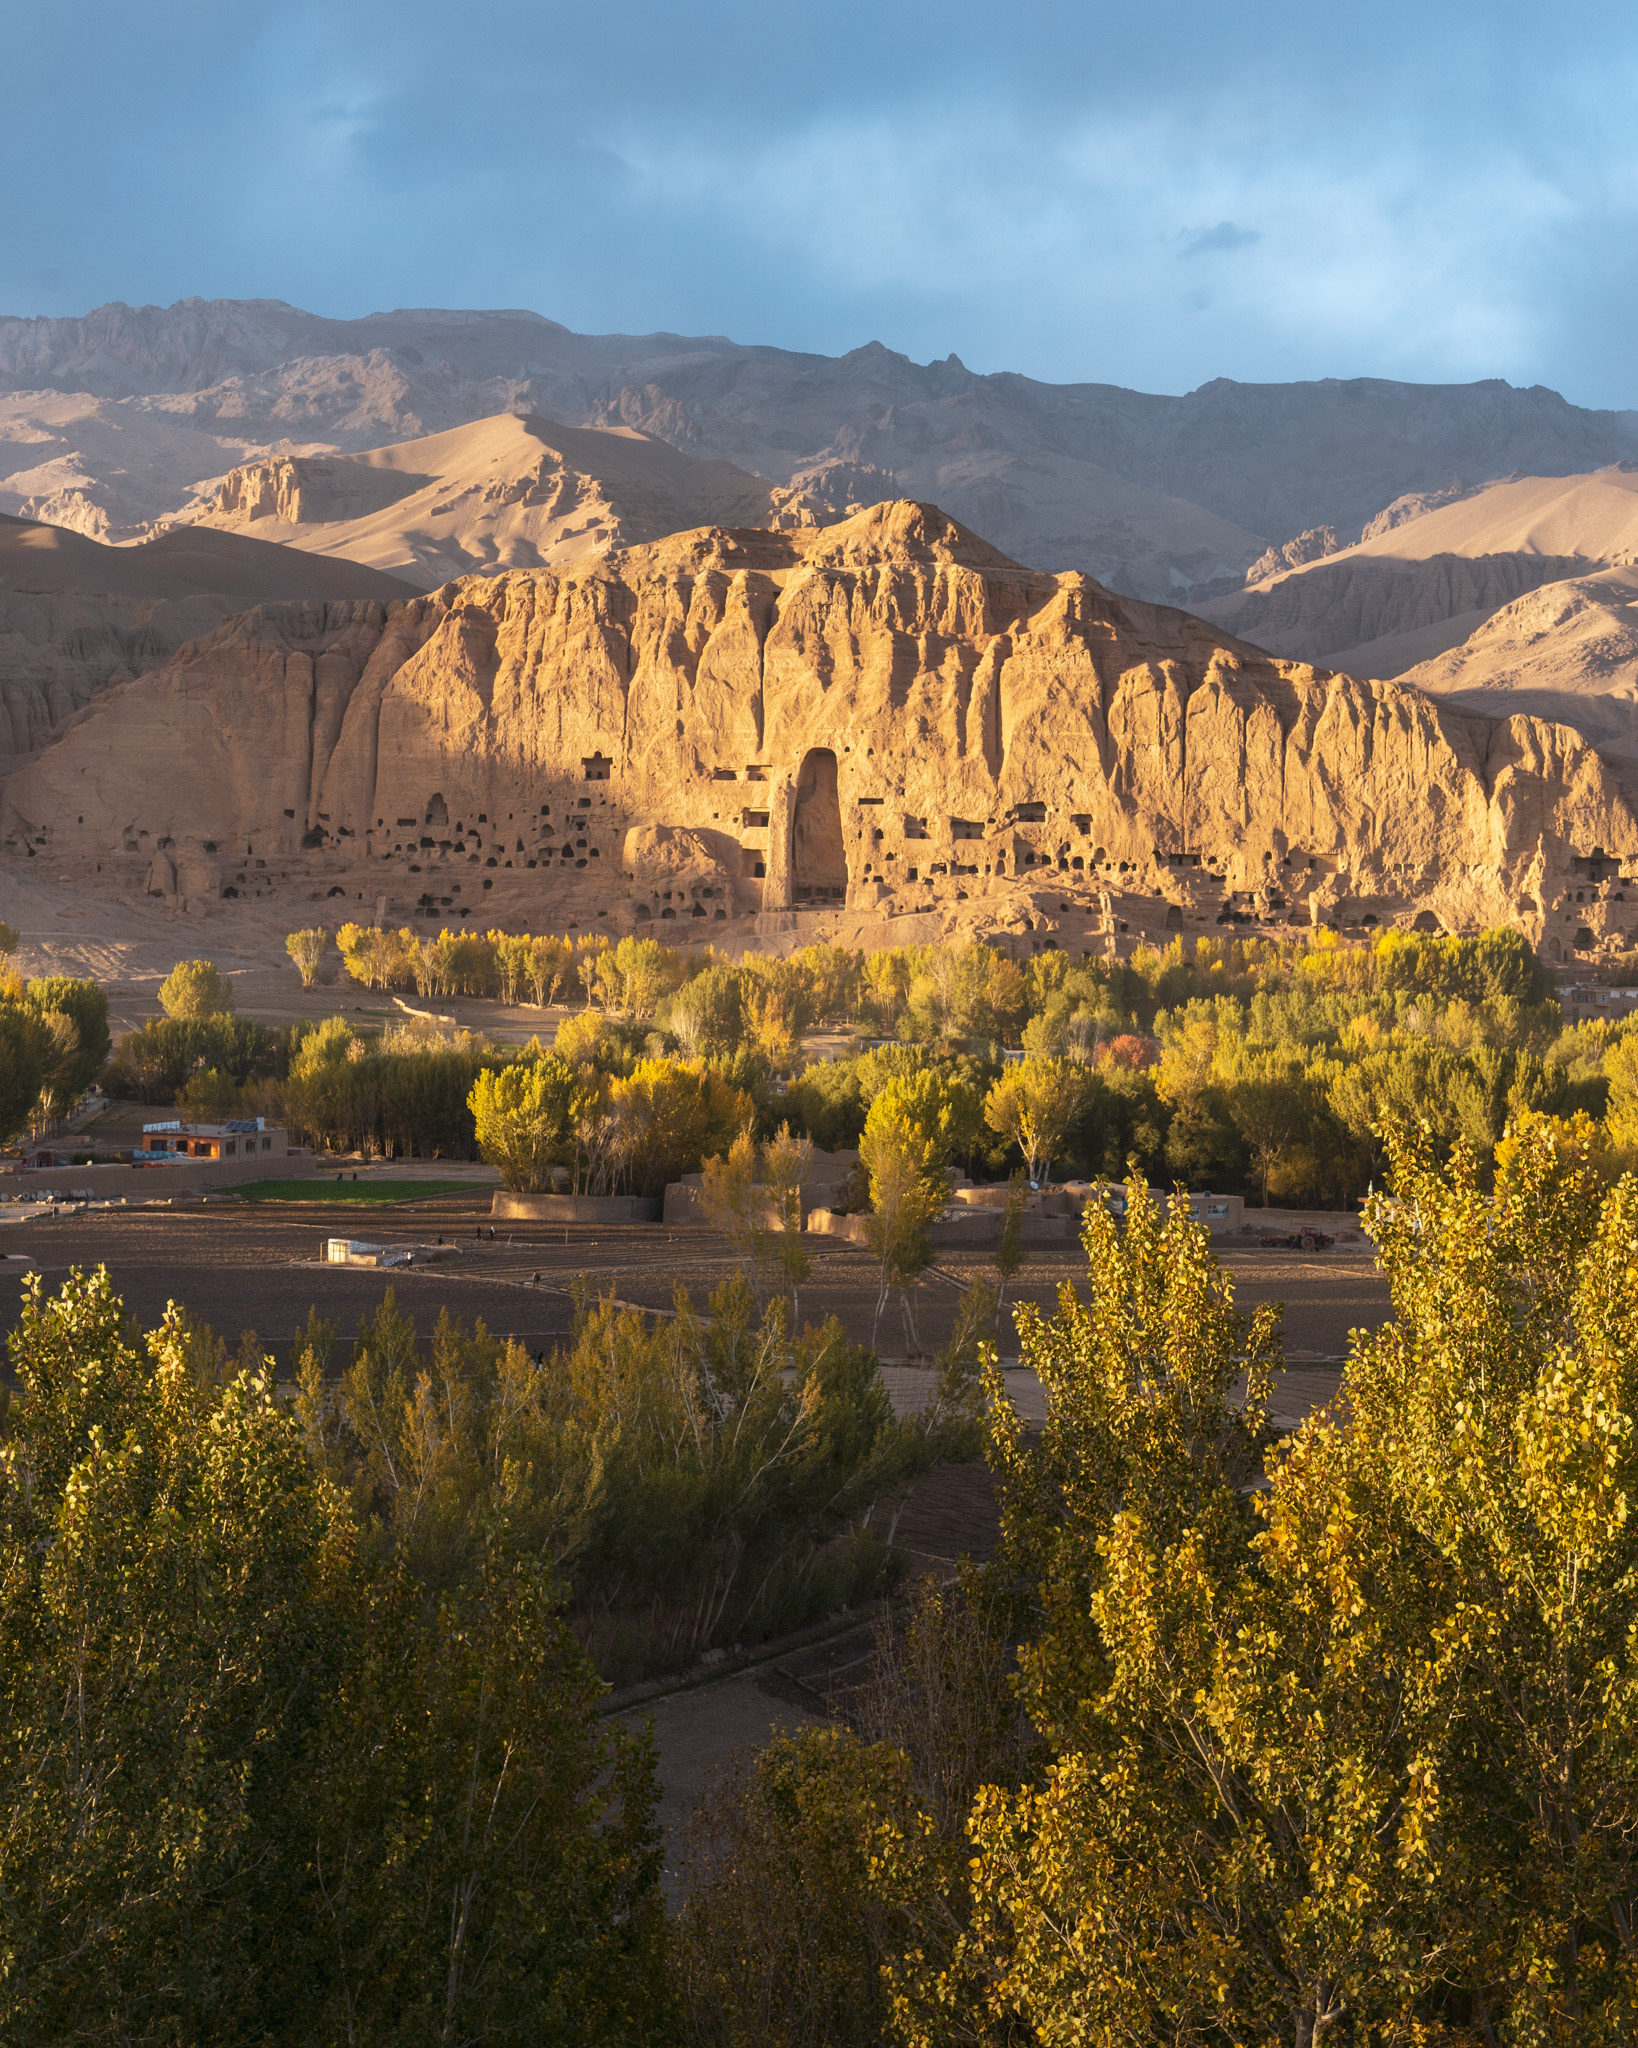 Remnants of the Buddhas of Bamiyan